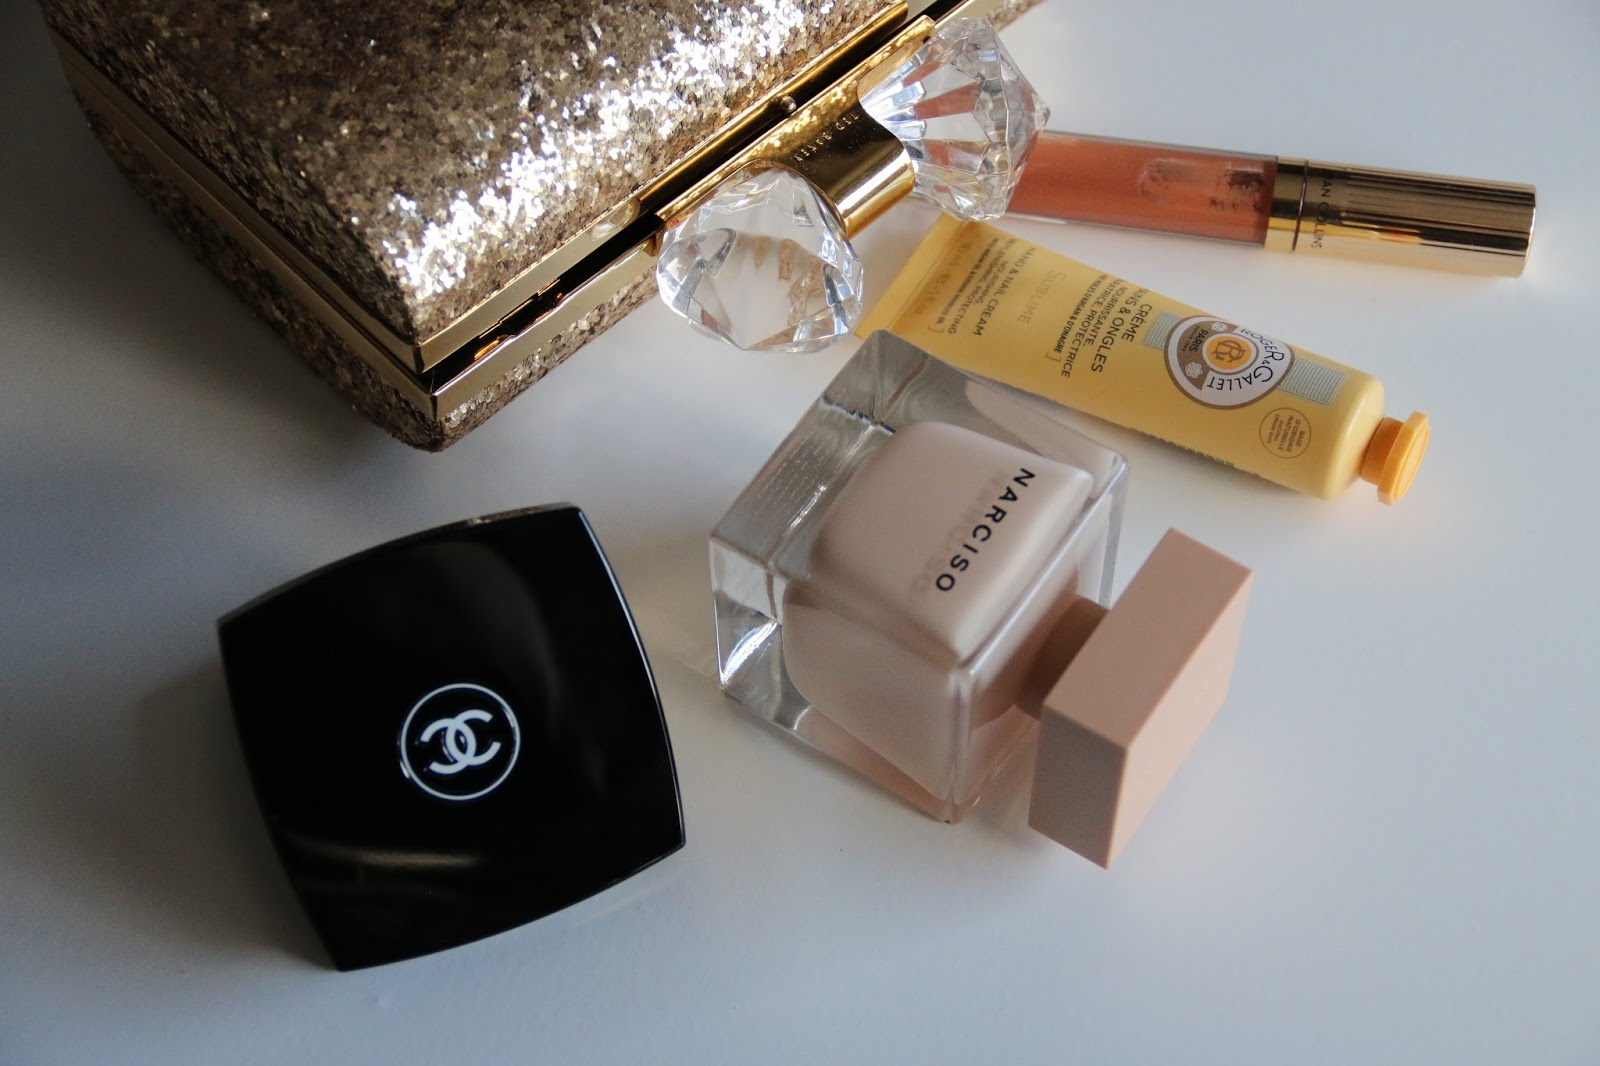 Autumn Clutch Bag Beauty Essentials Featuring Ted Baker, Joan Collins Timeless Beauty, Roger and Gallet, Narciso Rodriguez and Chanel Image